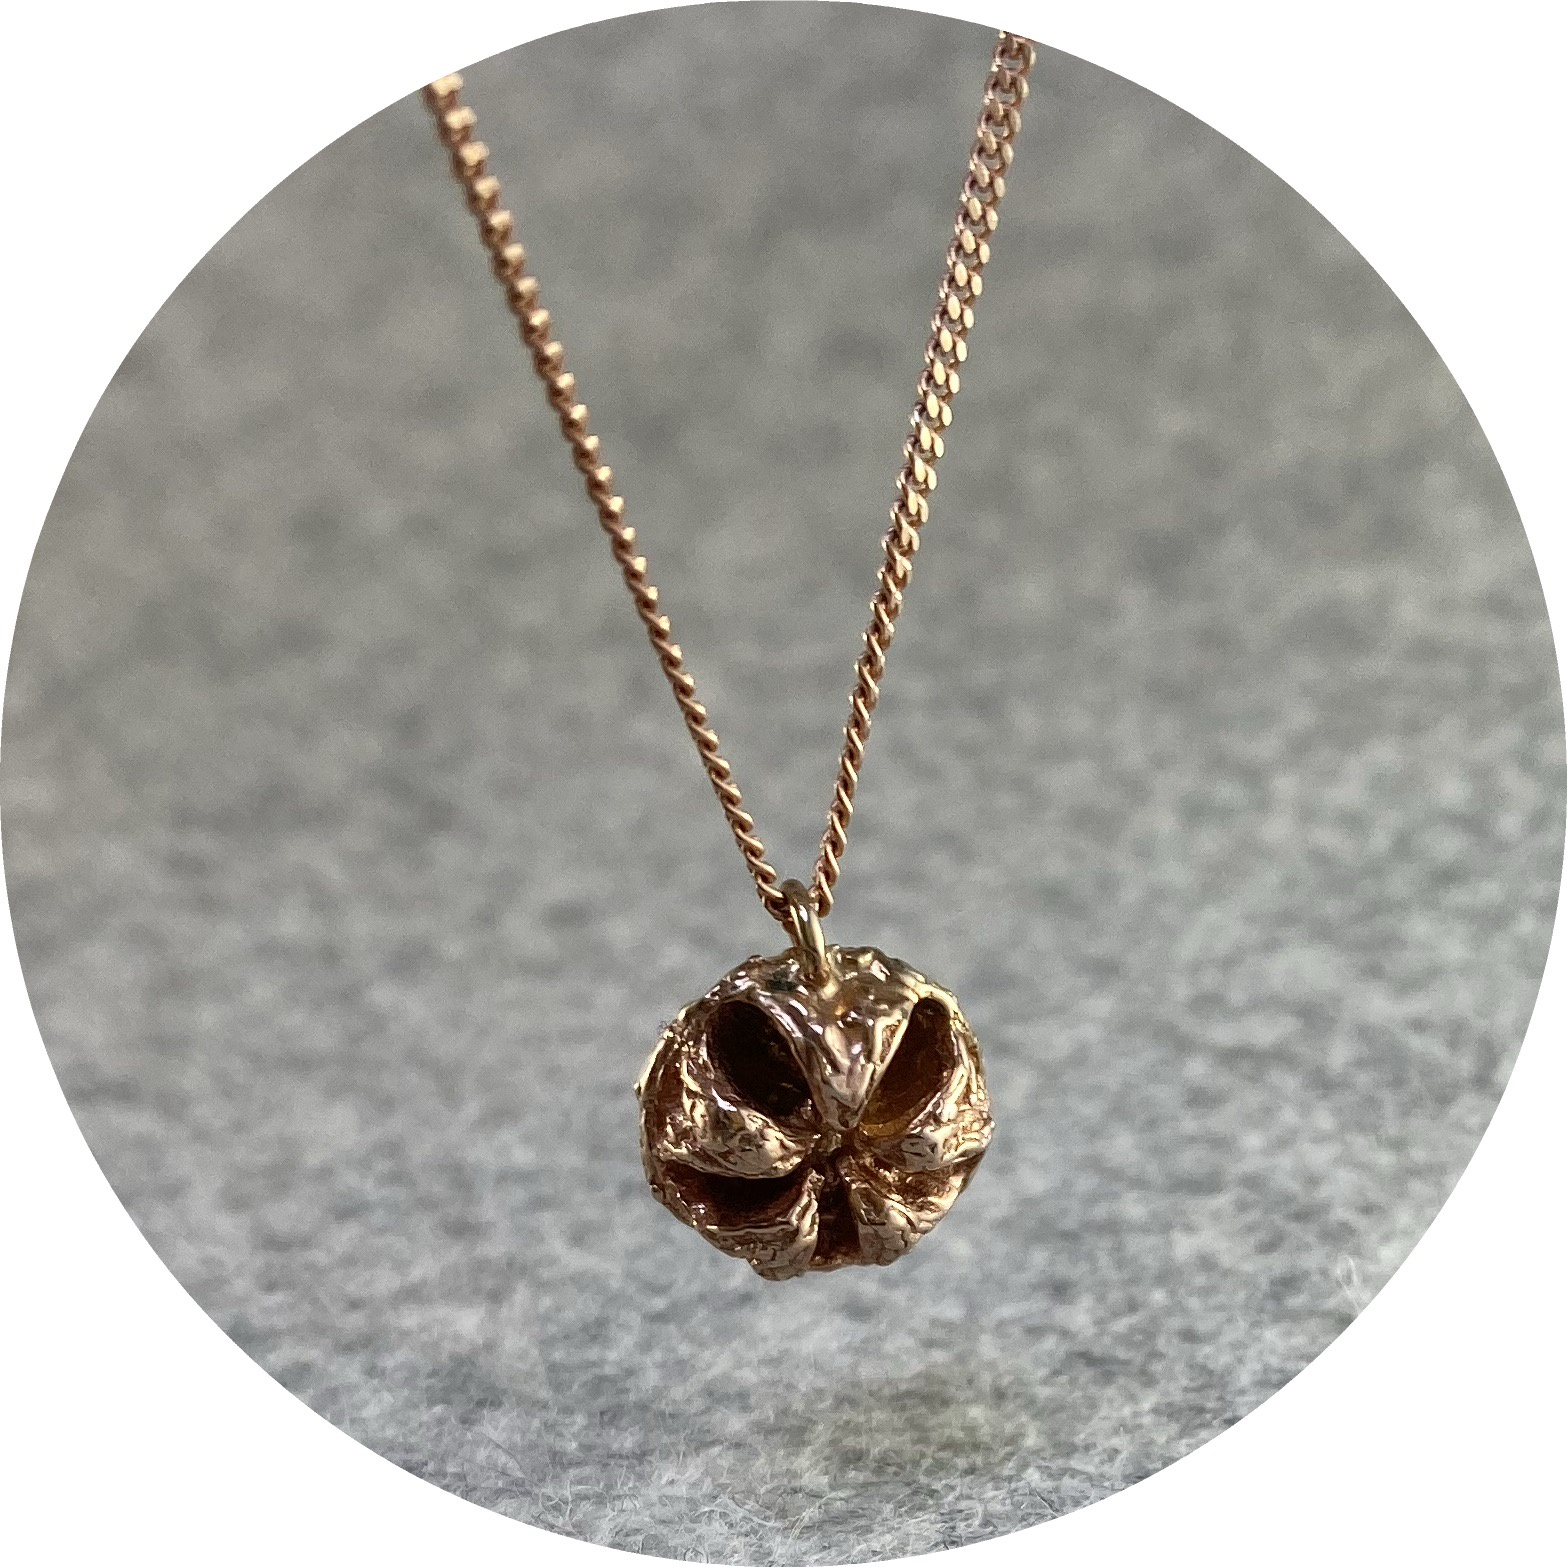 Manuela Igreja - 'Rose Big Manuka Necklace', 925 silver, rose gold plate